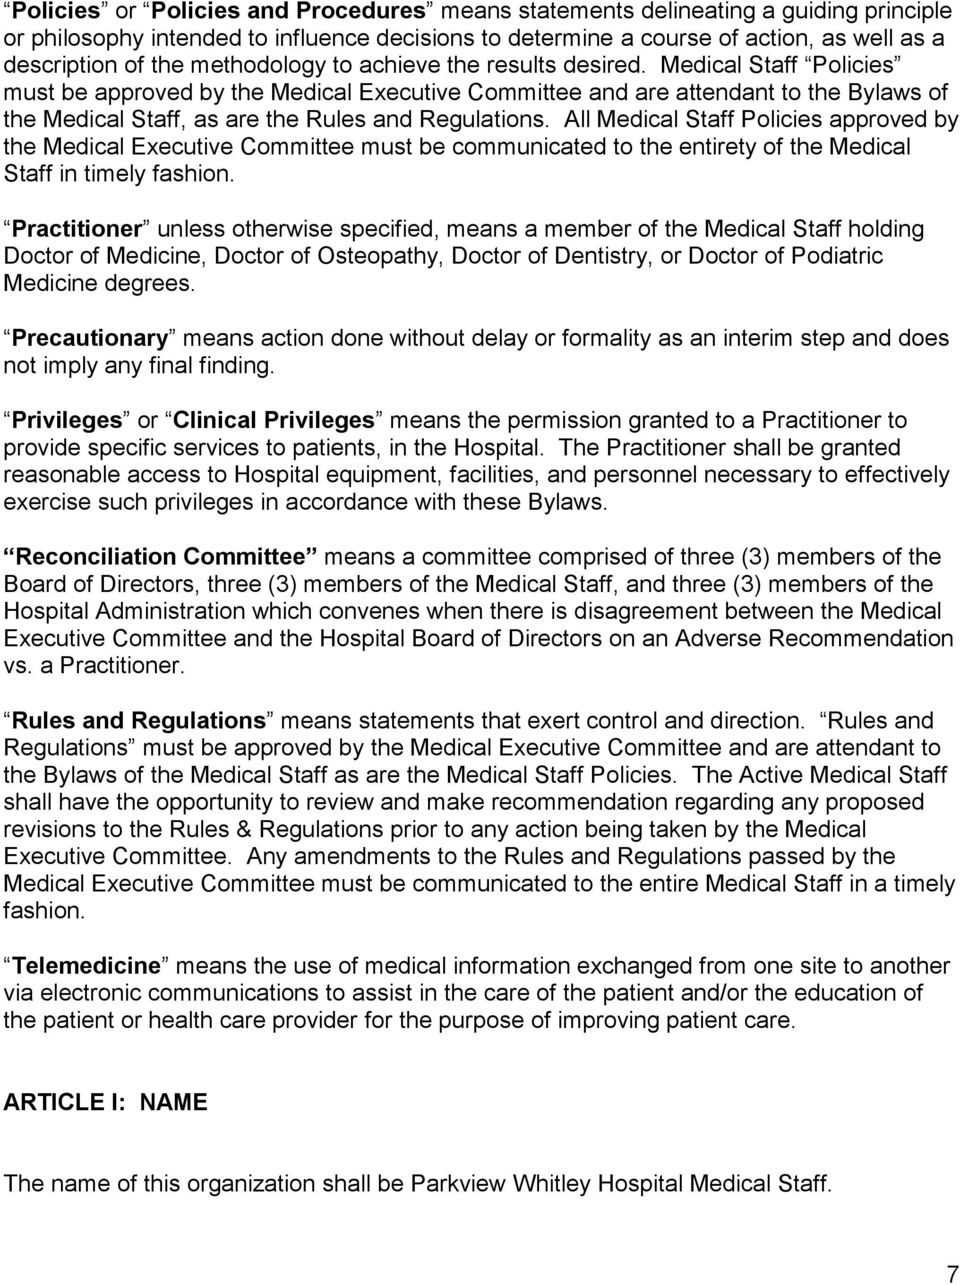 Medical Staff Policies must be approved by the Medical Executive Committee and are attendant to the Bylaws of the Medical Staff, as are the Rules and Regulations.